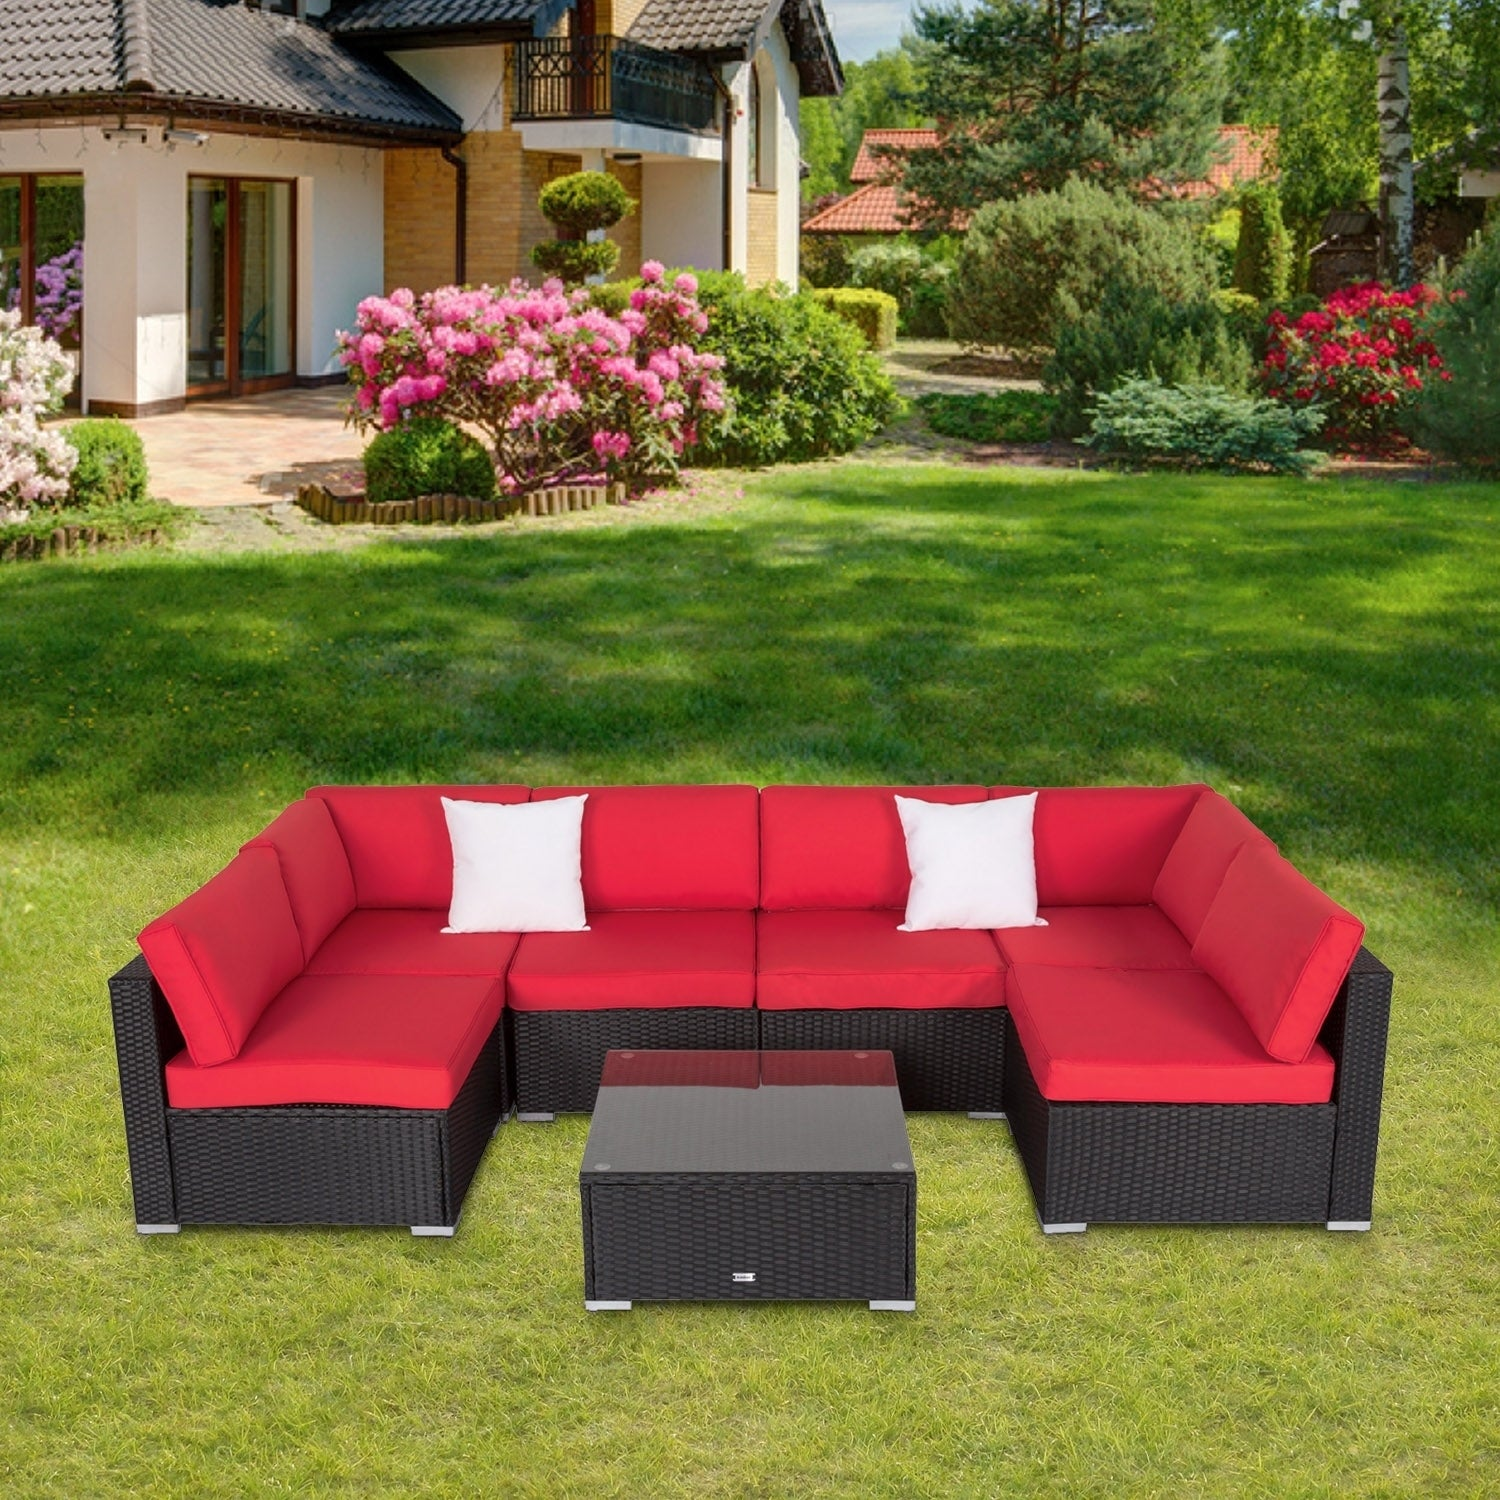 Shop Kinbor Patio Sectional Sofa Outdoor Furniture Wicker Sofa Set ...